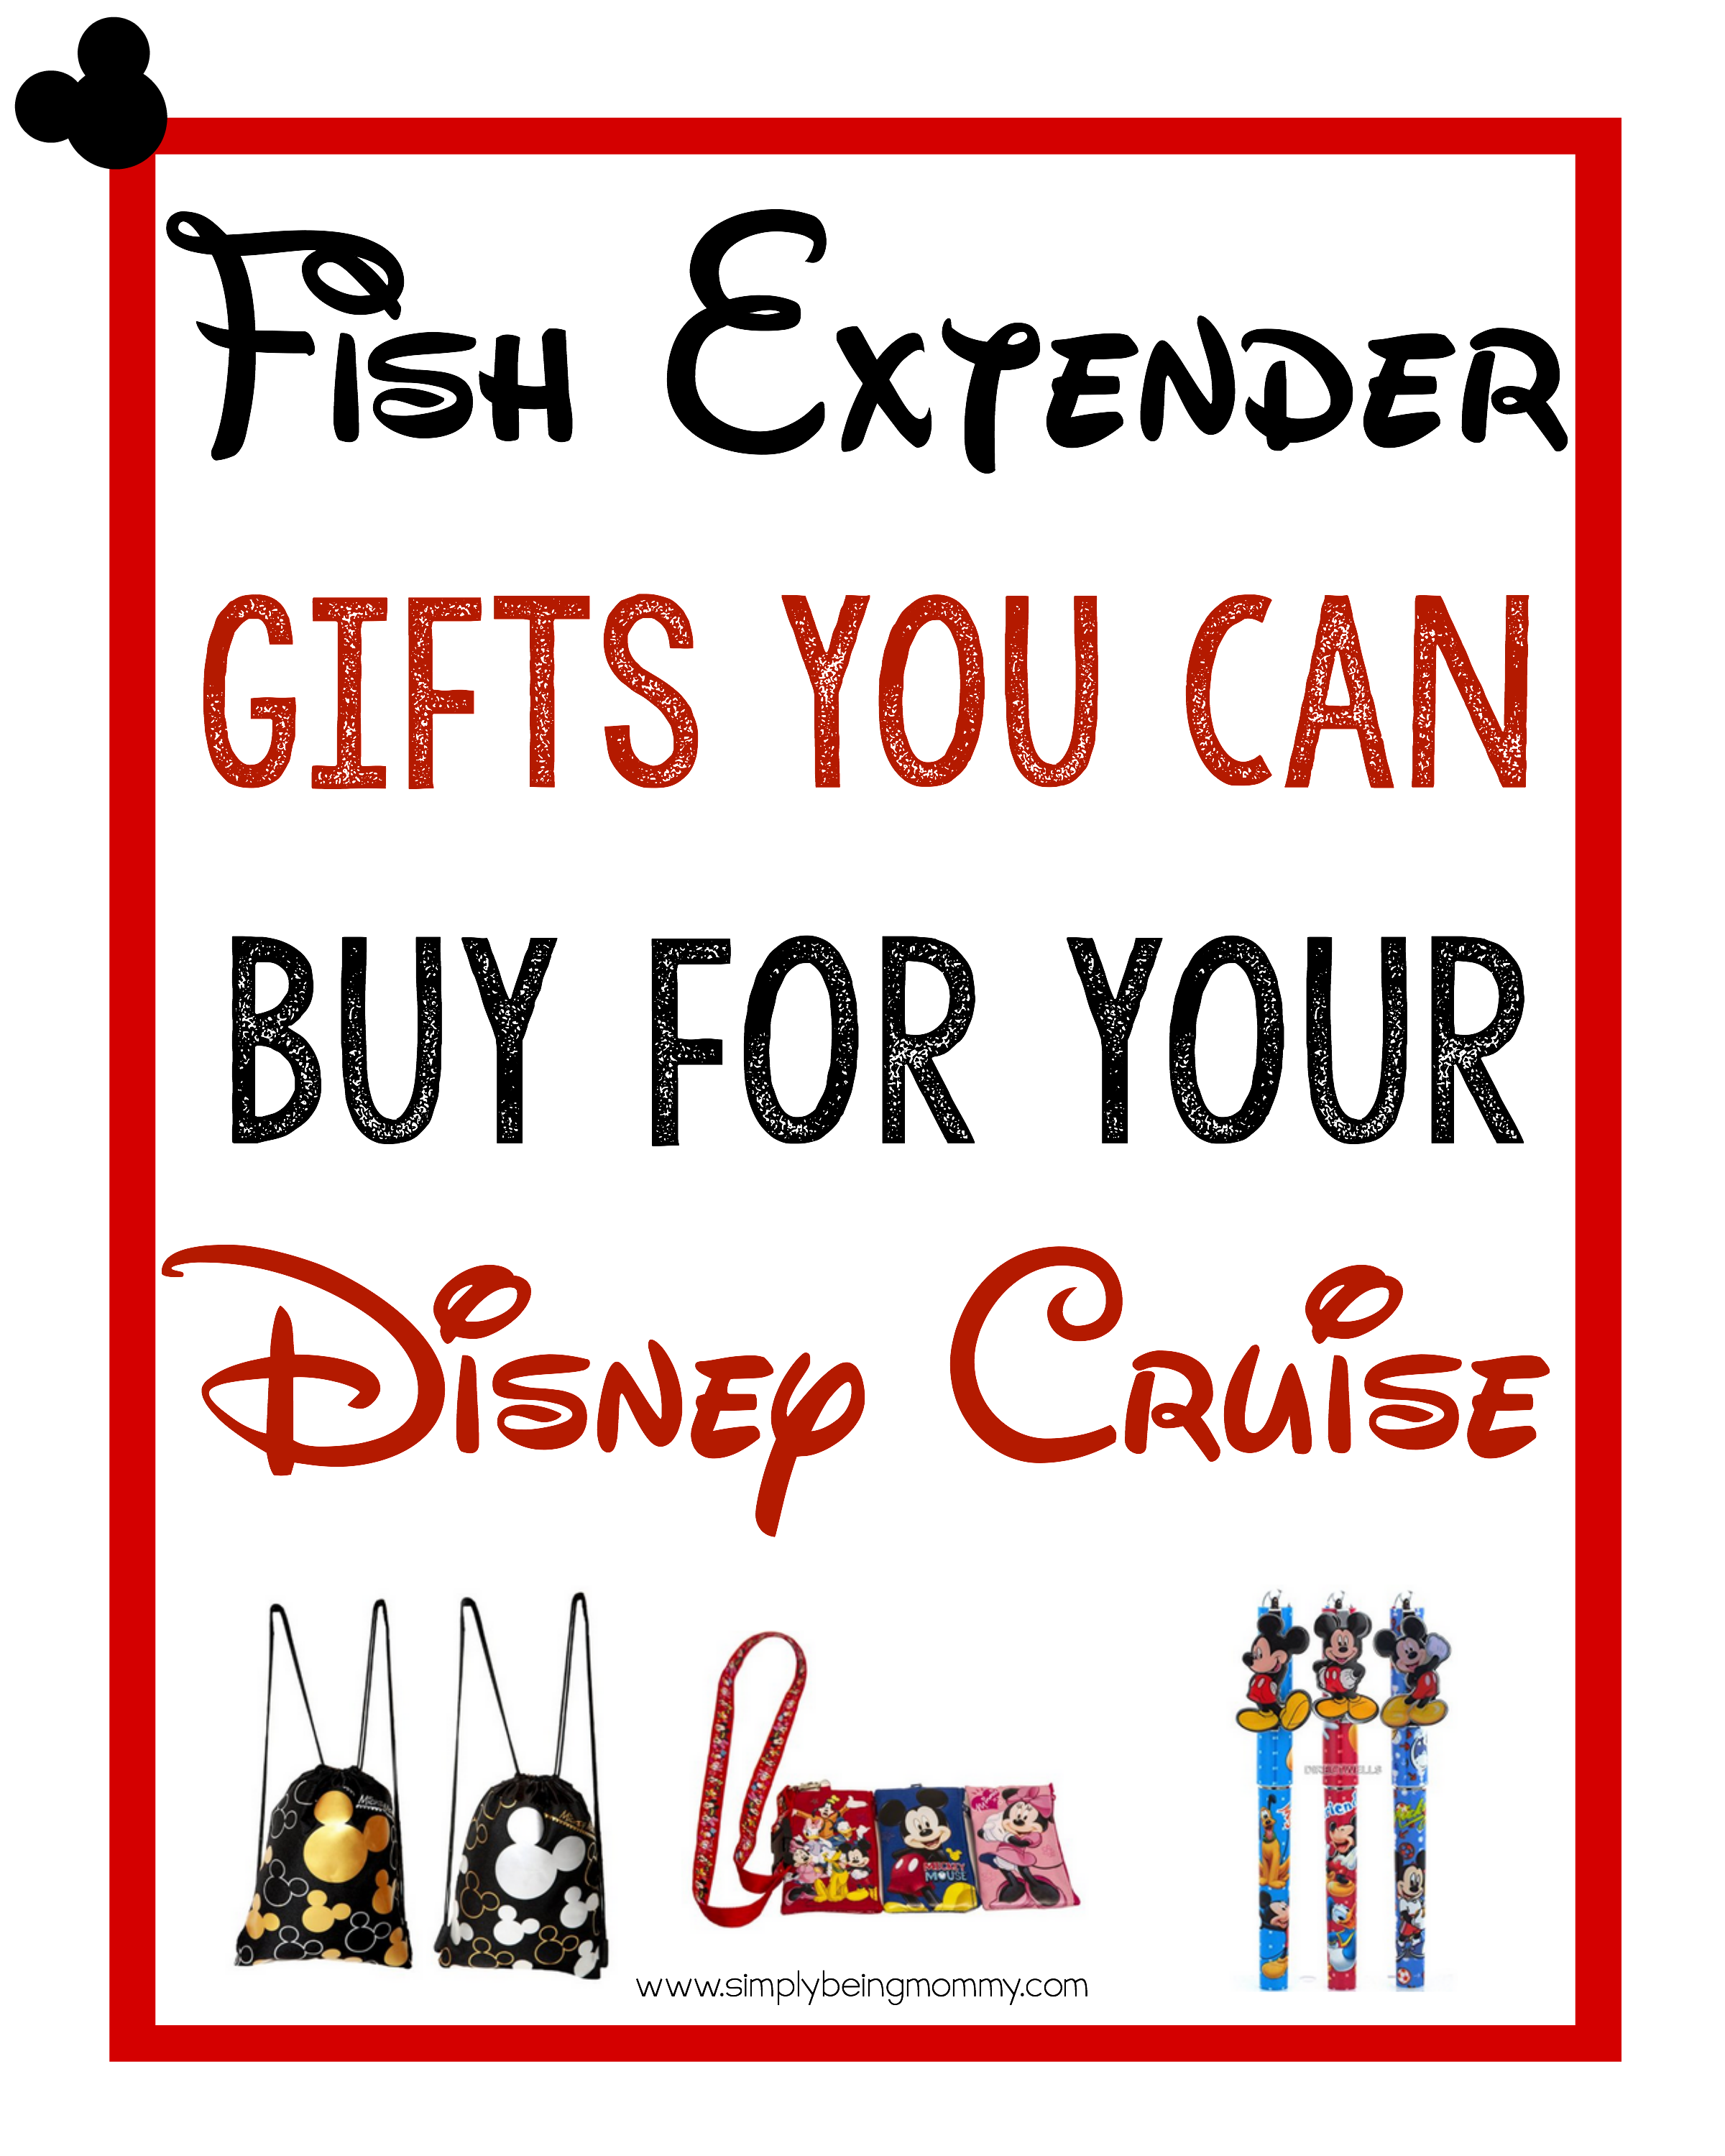 Planning your Fish Extender gifts can be stressful. Here is a huge list of Fish Extender gifts you can buy to relieve some of the stress. Happy planning.